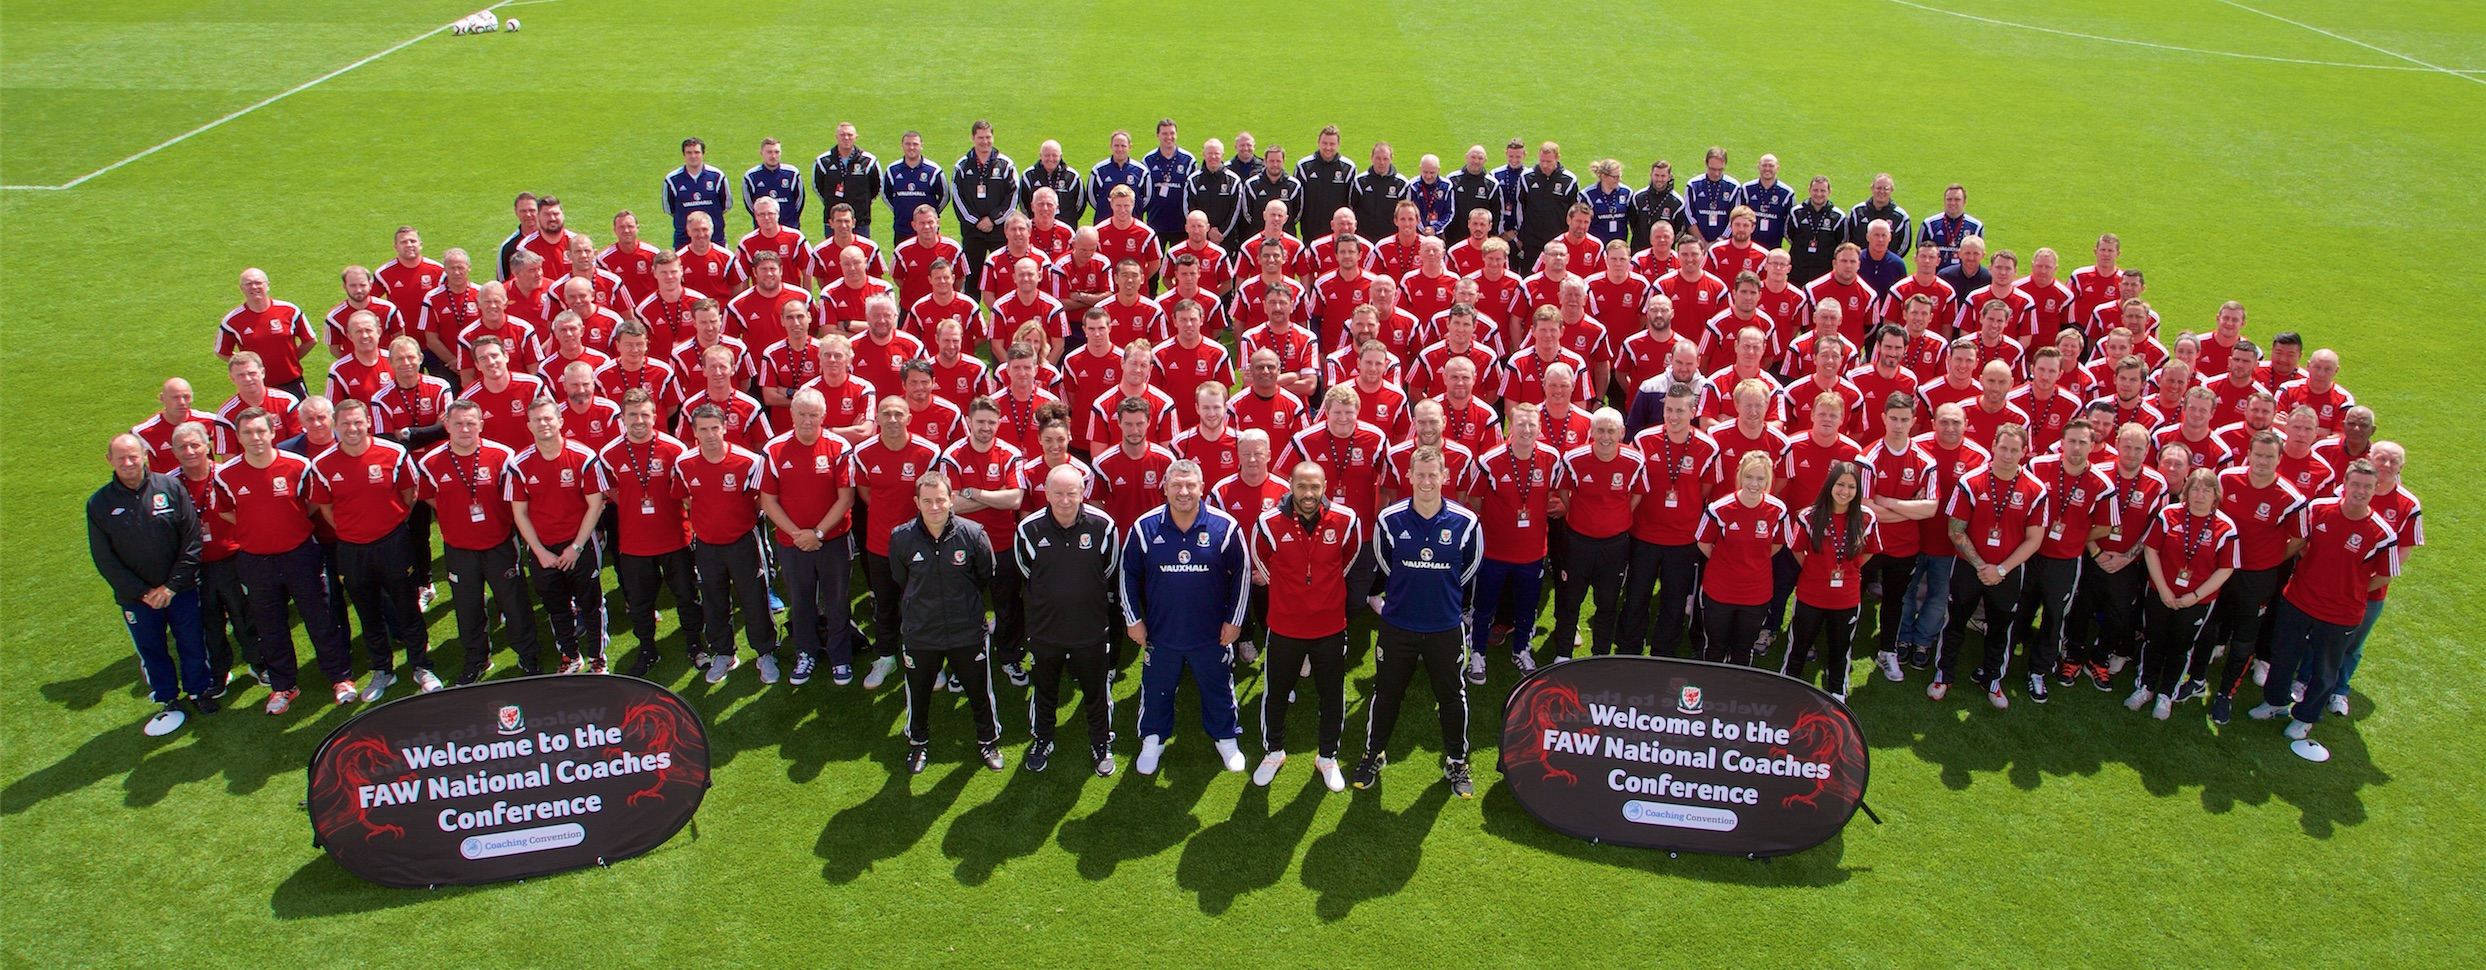 2015 FAW National Coaches Conference (3)